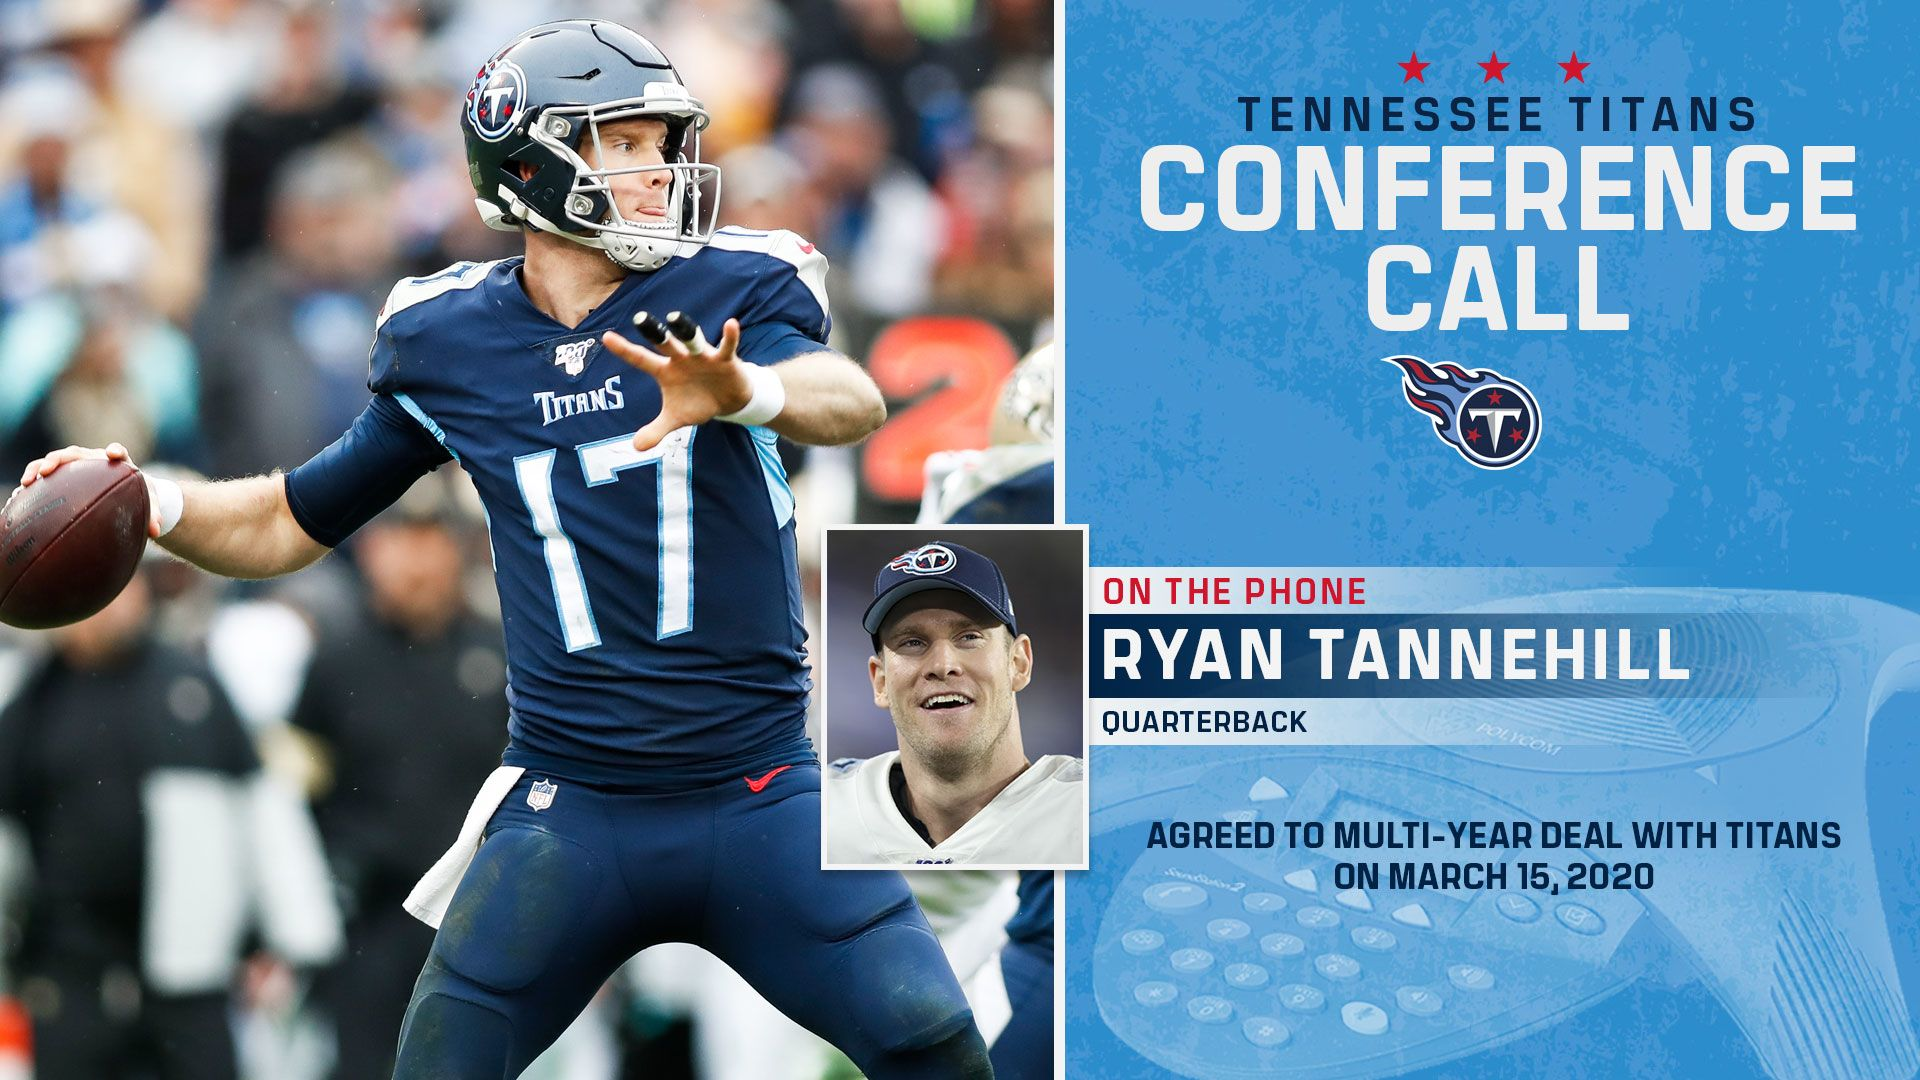 Conference Call: Ryan Tannehill